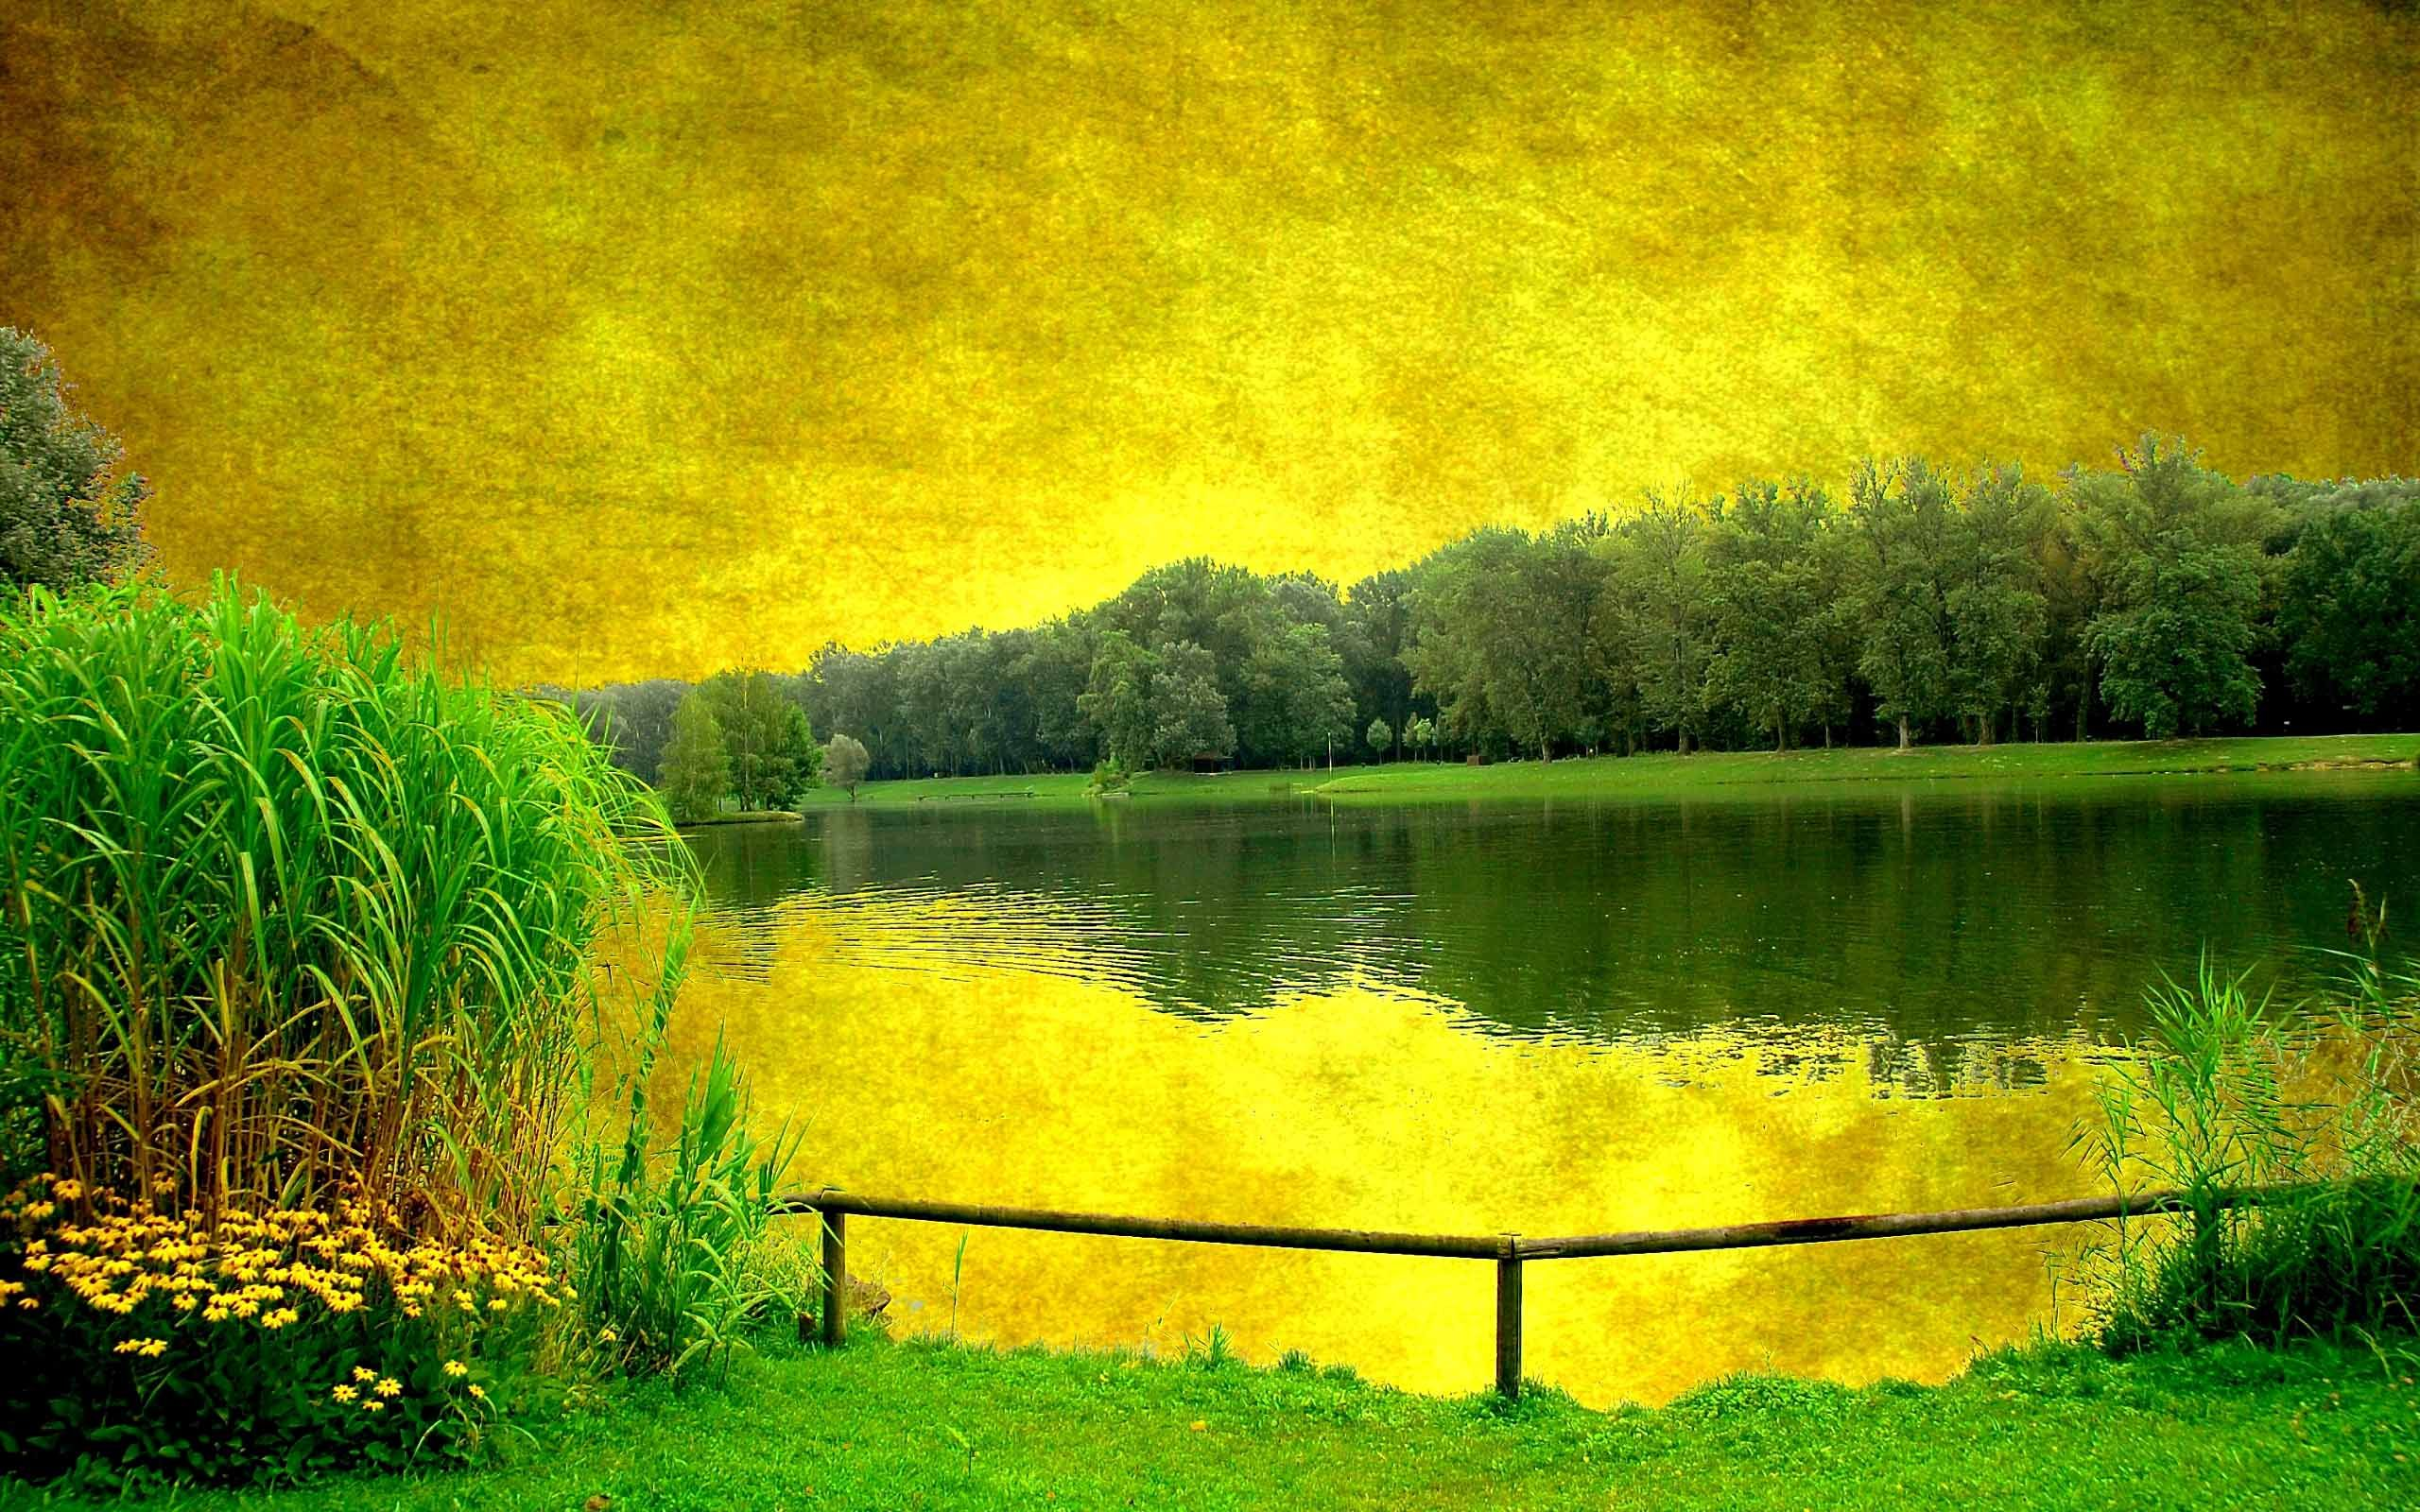 Image For Landscape Paintings Hd Wallpapers Landscape Wallpaper Beautiful Landscape Paintings Scenery Wallpaper